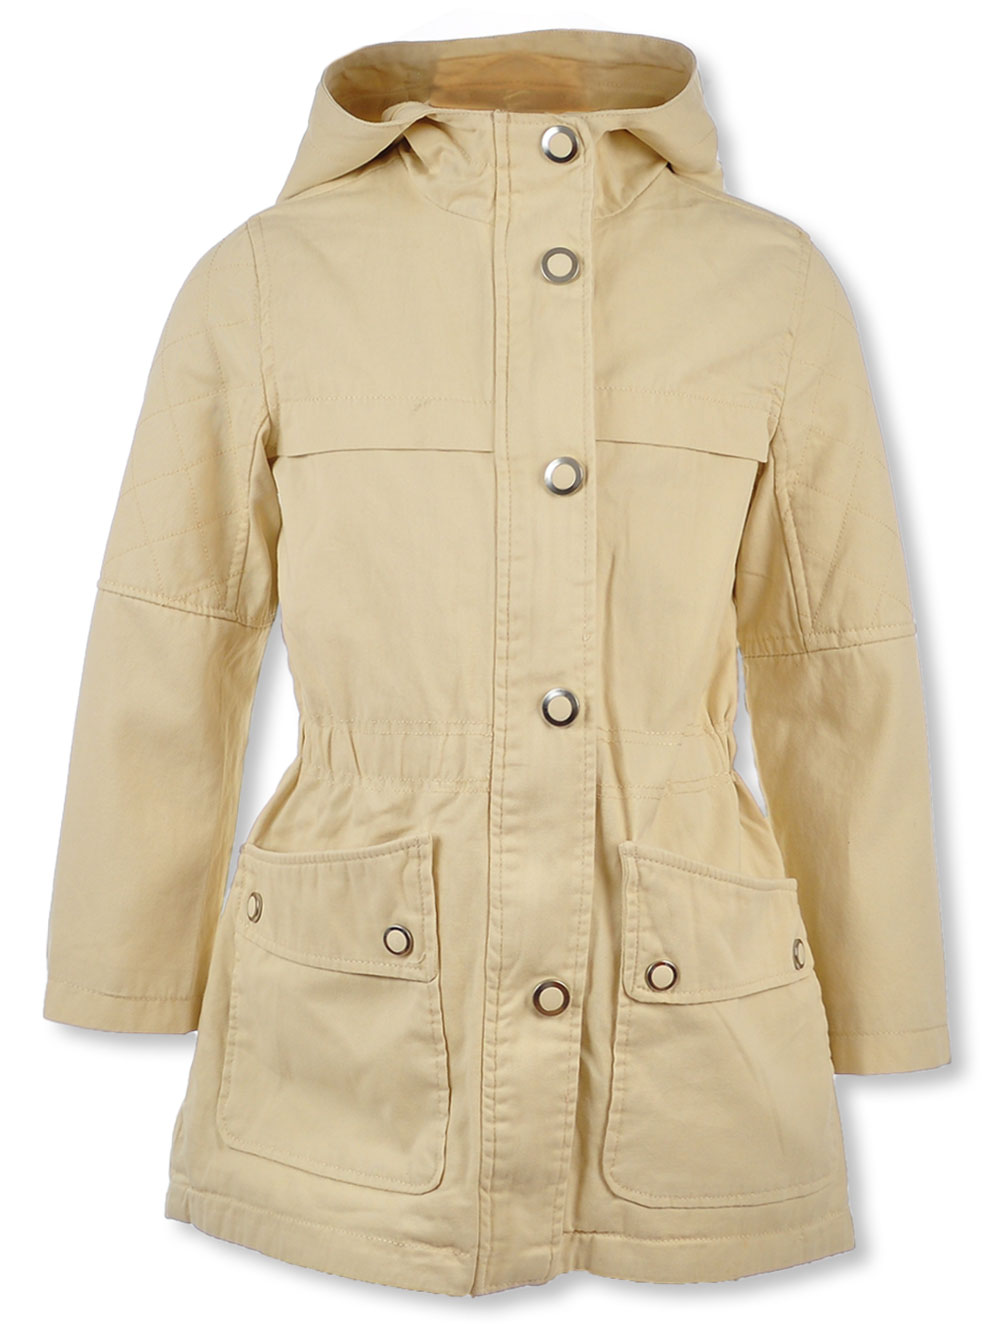 Size 7 Light Jackets for Girls